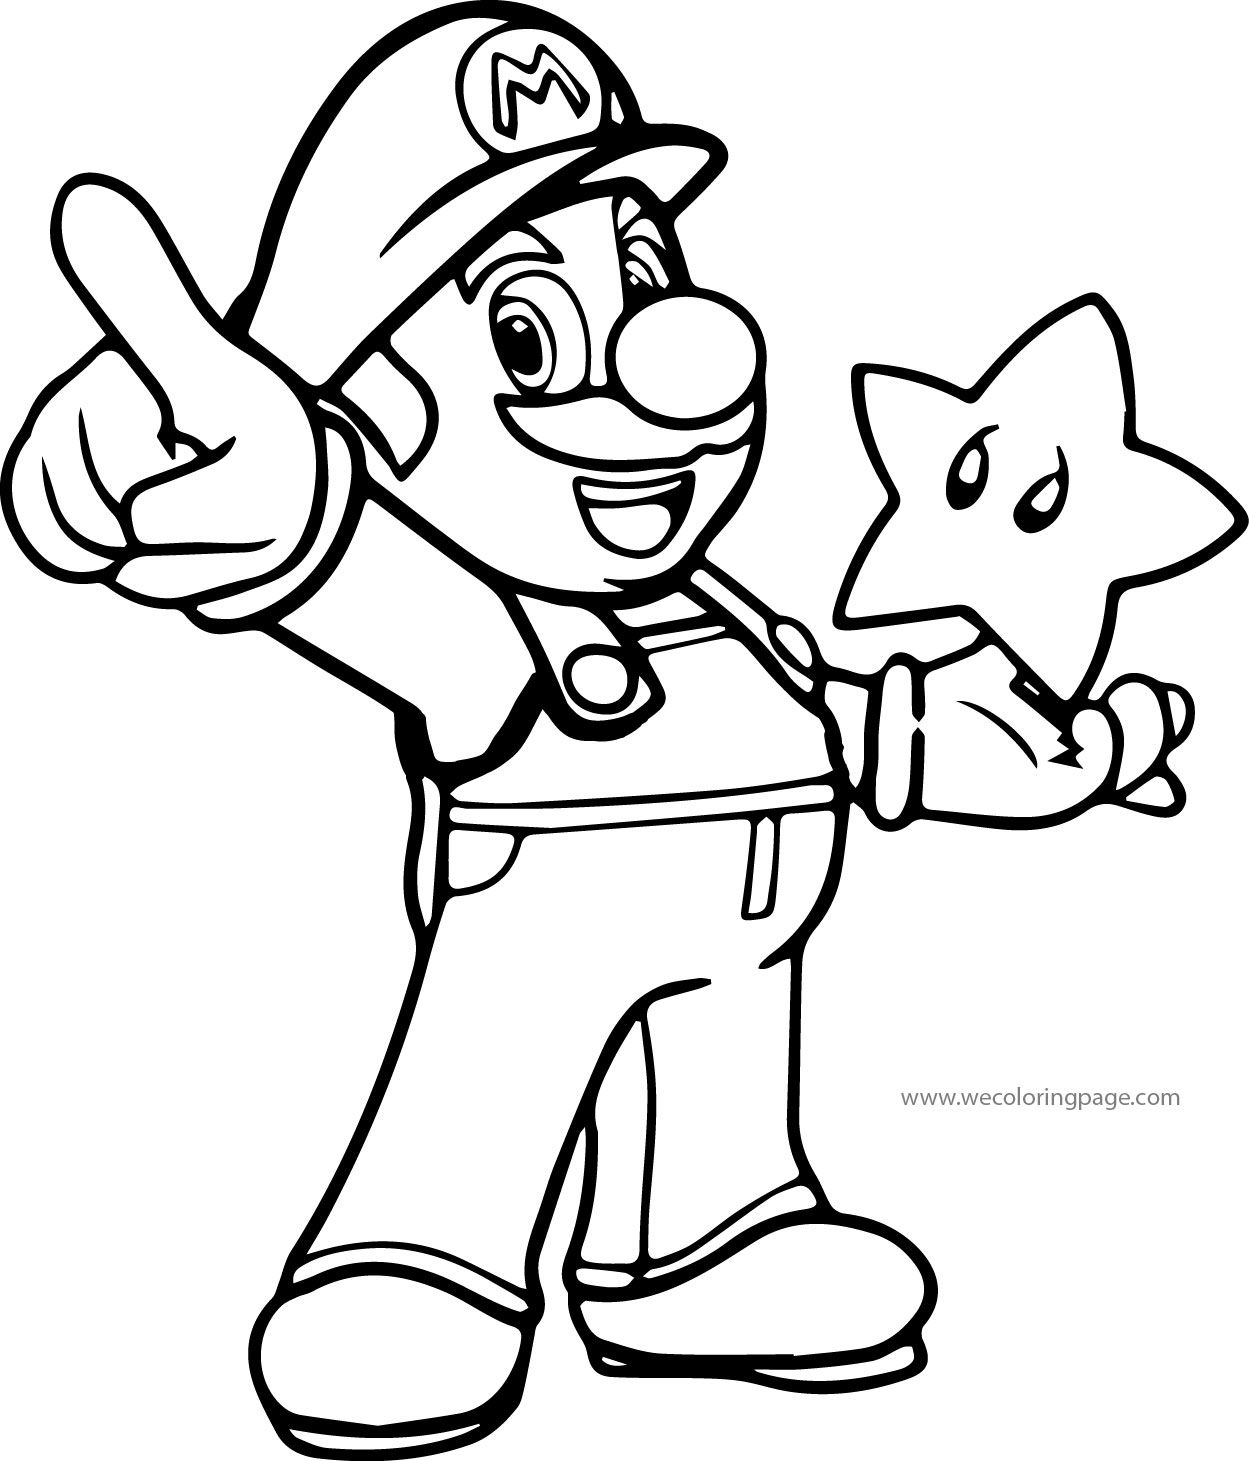 mario bro yoshi coloring pages - photo#14